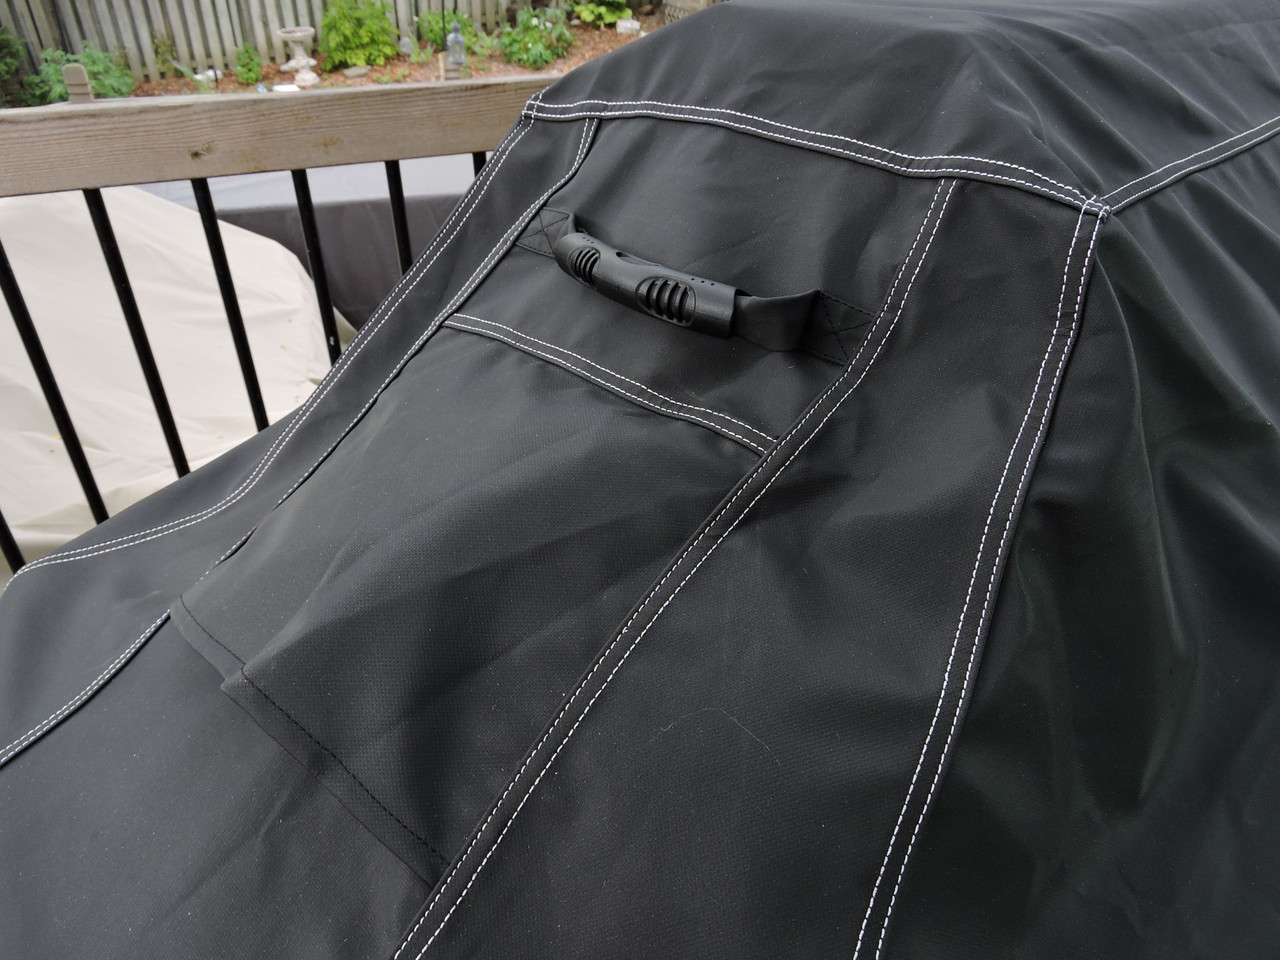 Tundra Supreme Grill Cover; Comfortable sure grip handles and critical air vents for circulation